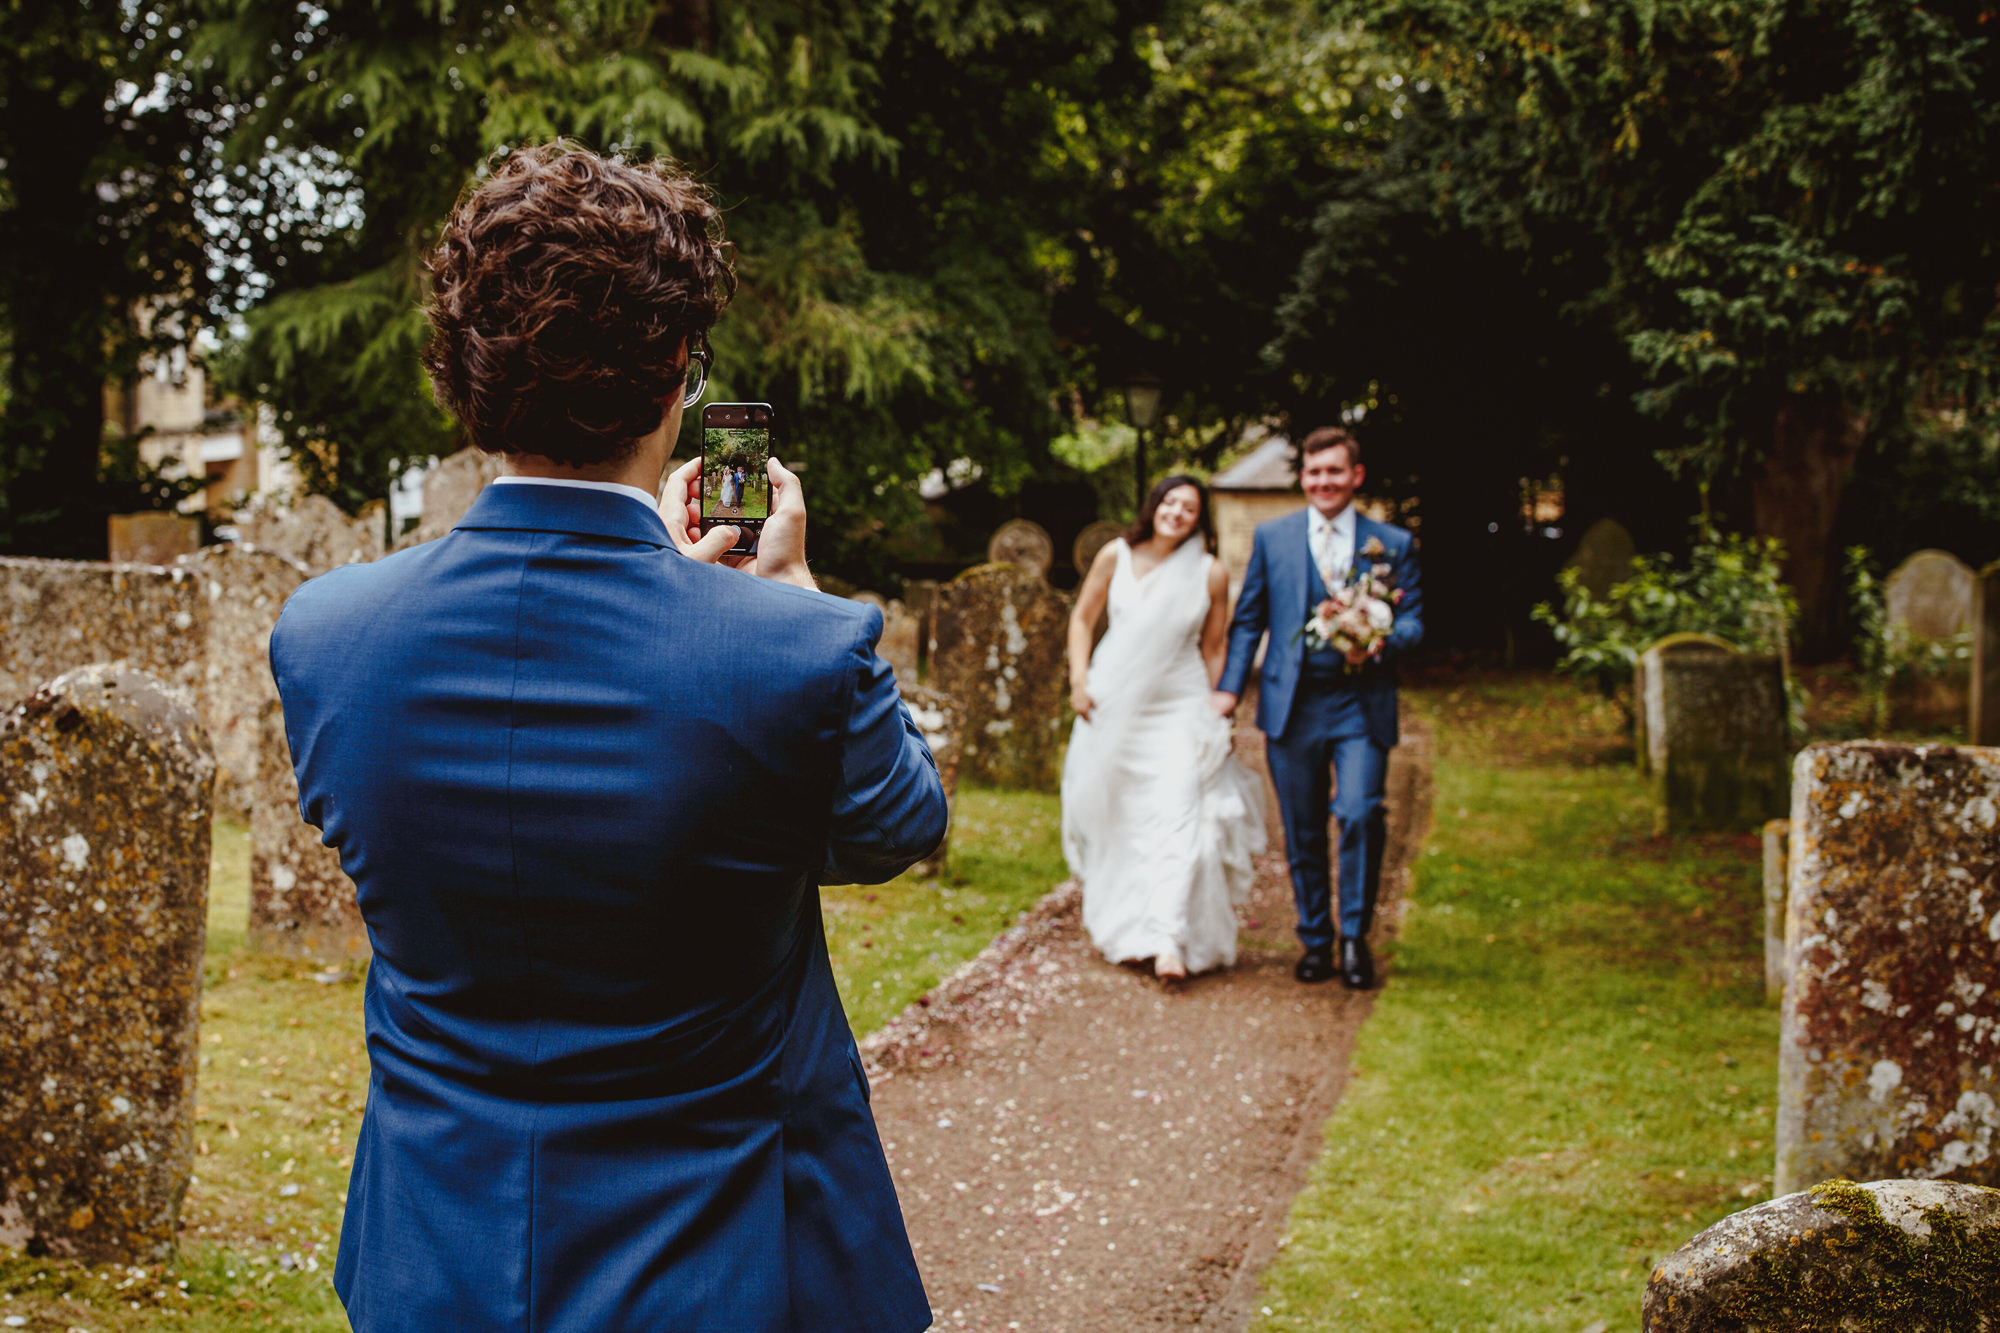 Guest taking photo of approaching bride and groom - photo by Tomas Juskaitis Photography